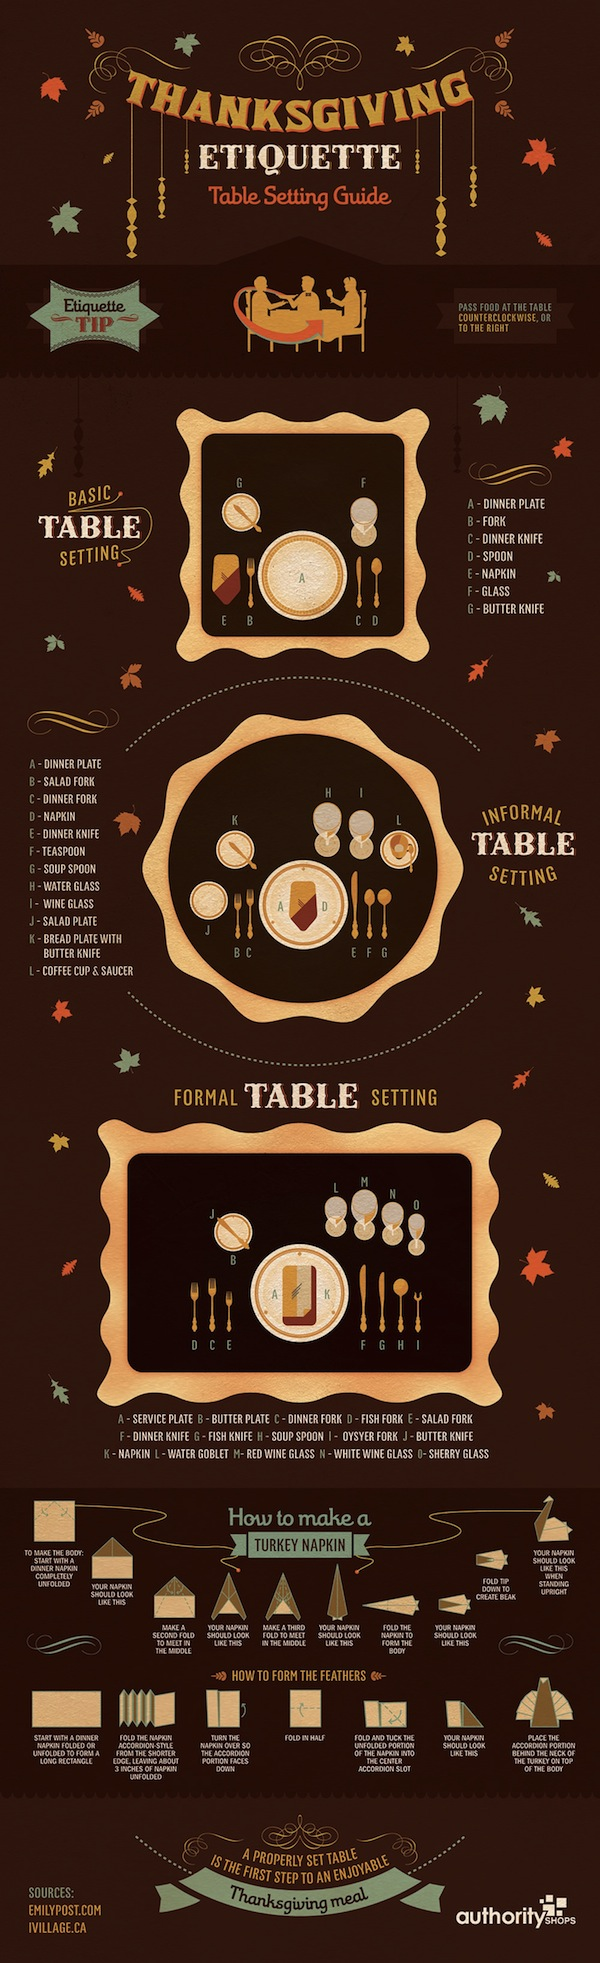 Infographic A Table Setting Guide For Thanksgiving Good Eats